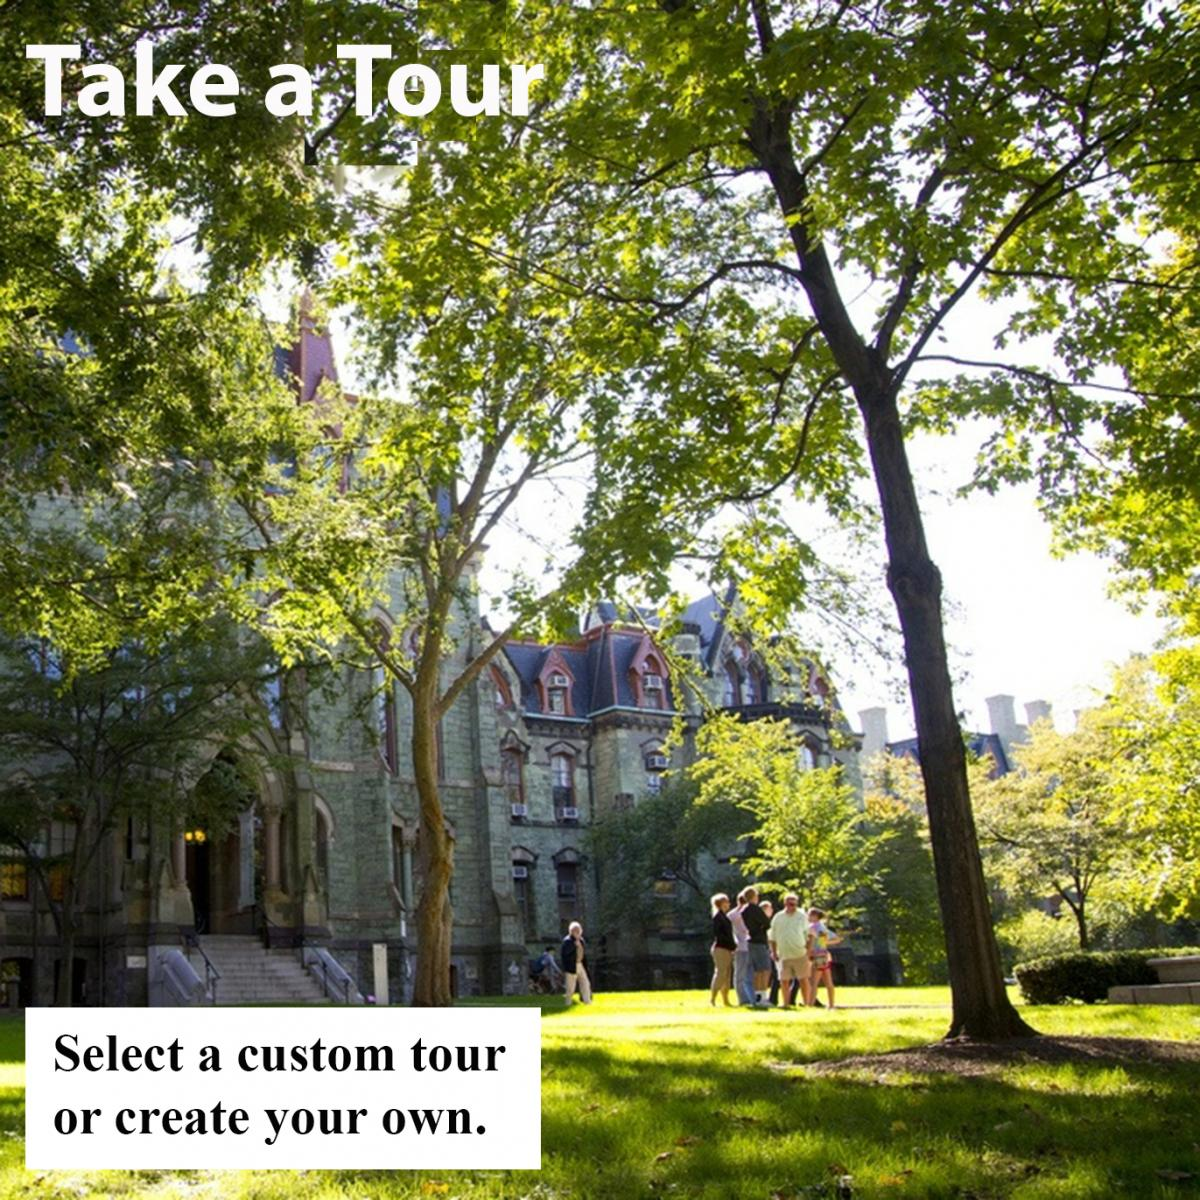 Select a custom tour or create your own